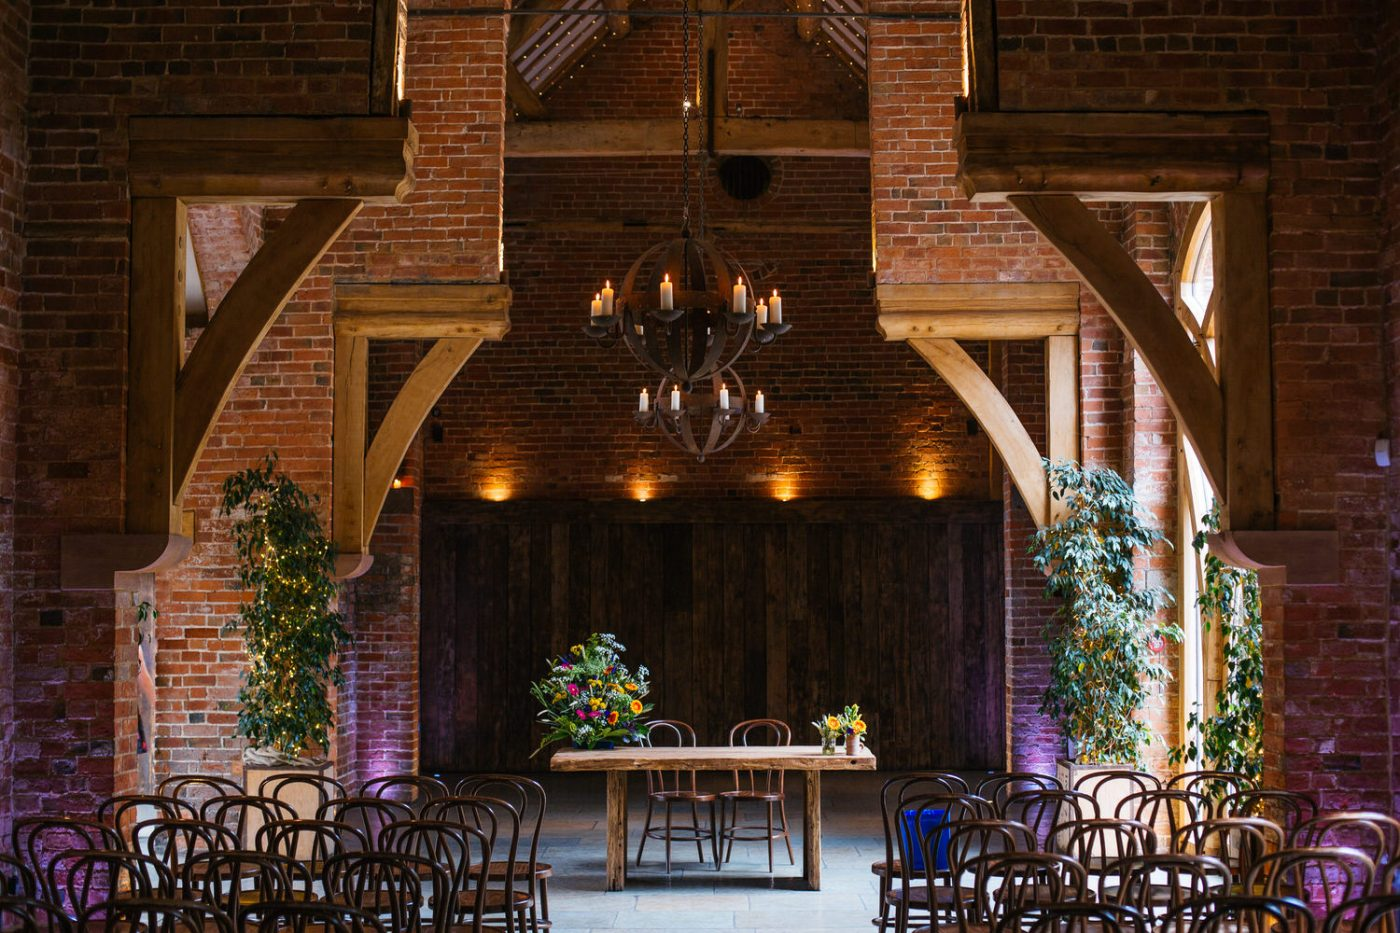 Shustoke Barn Wedding Venue